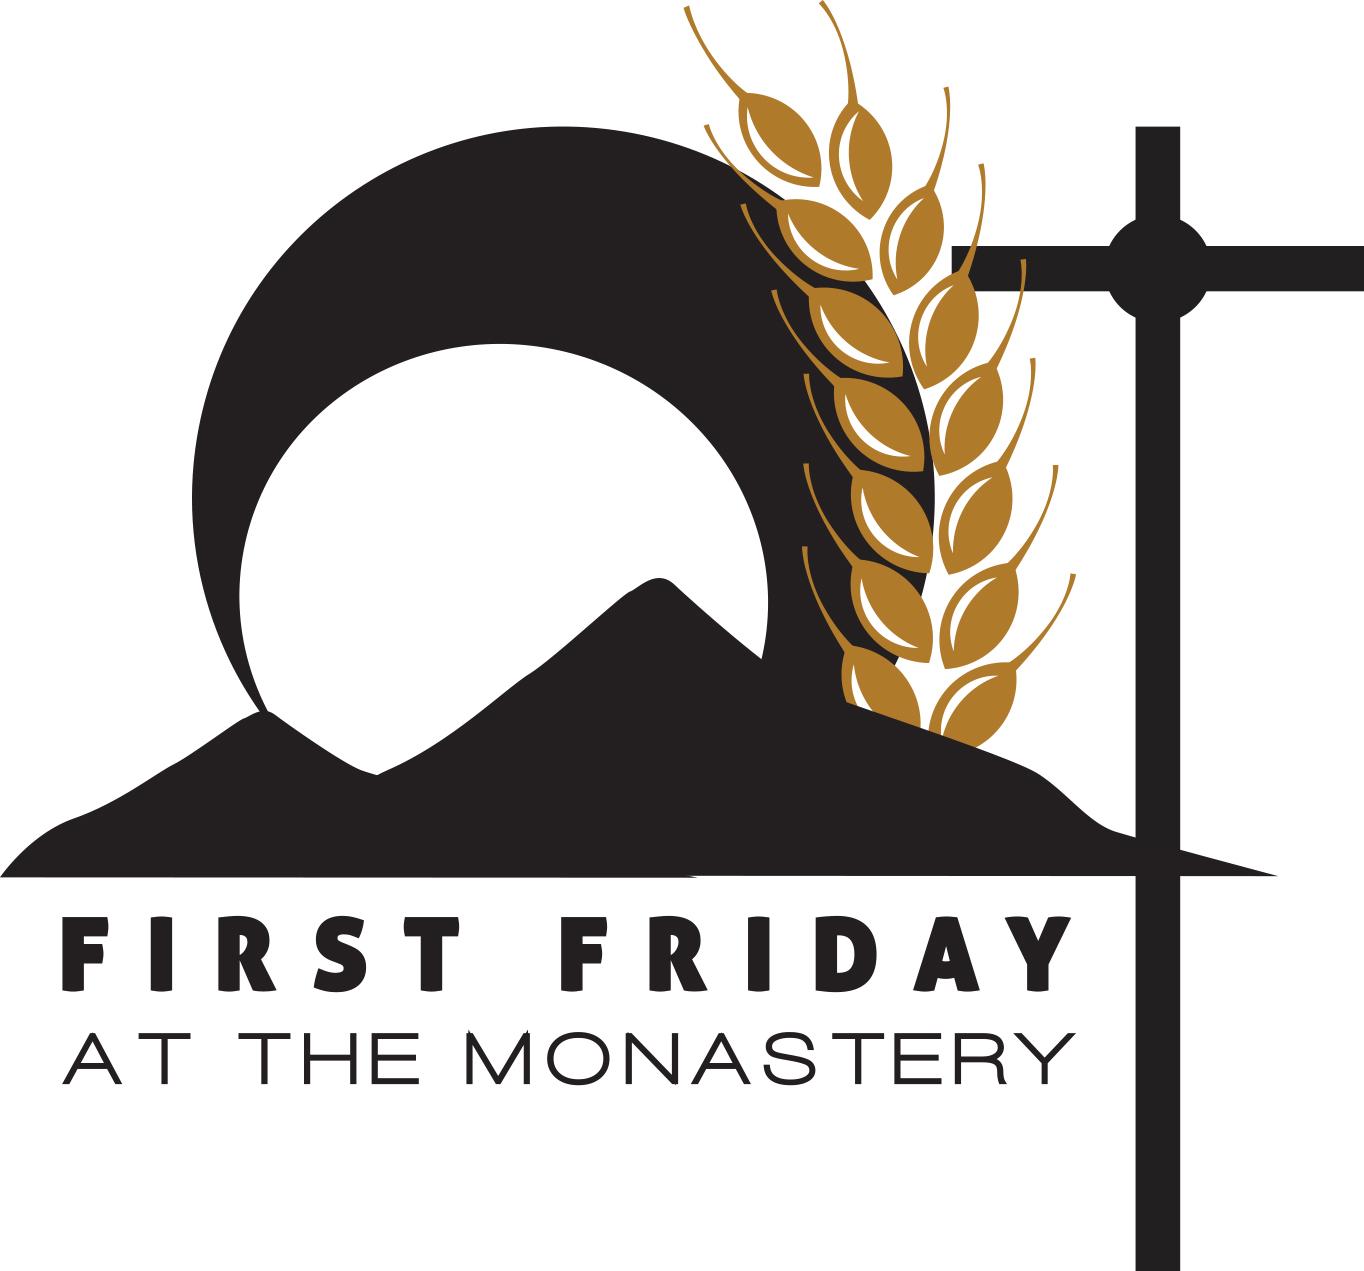 First Friday at the Monastery - FEB